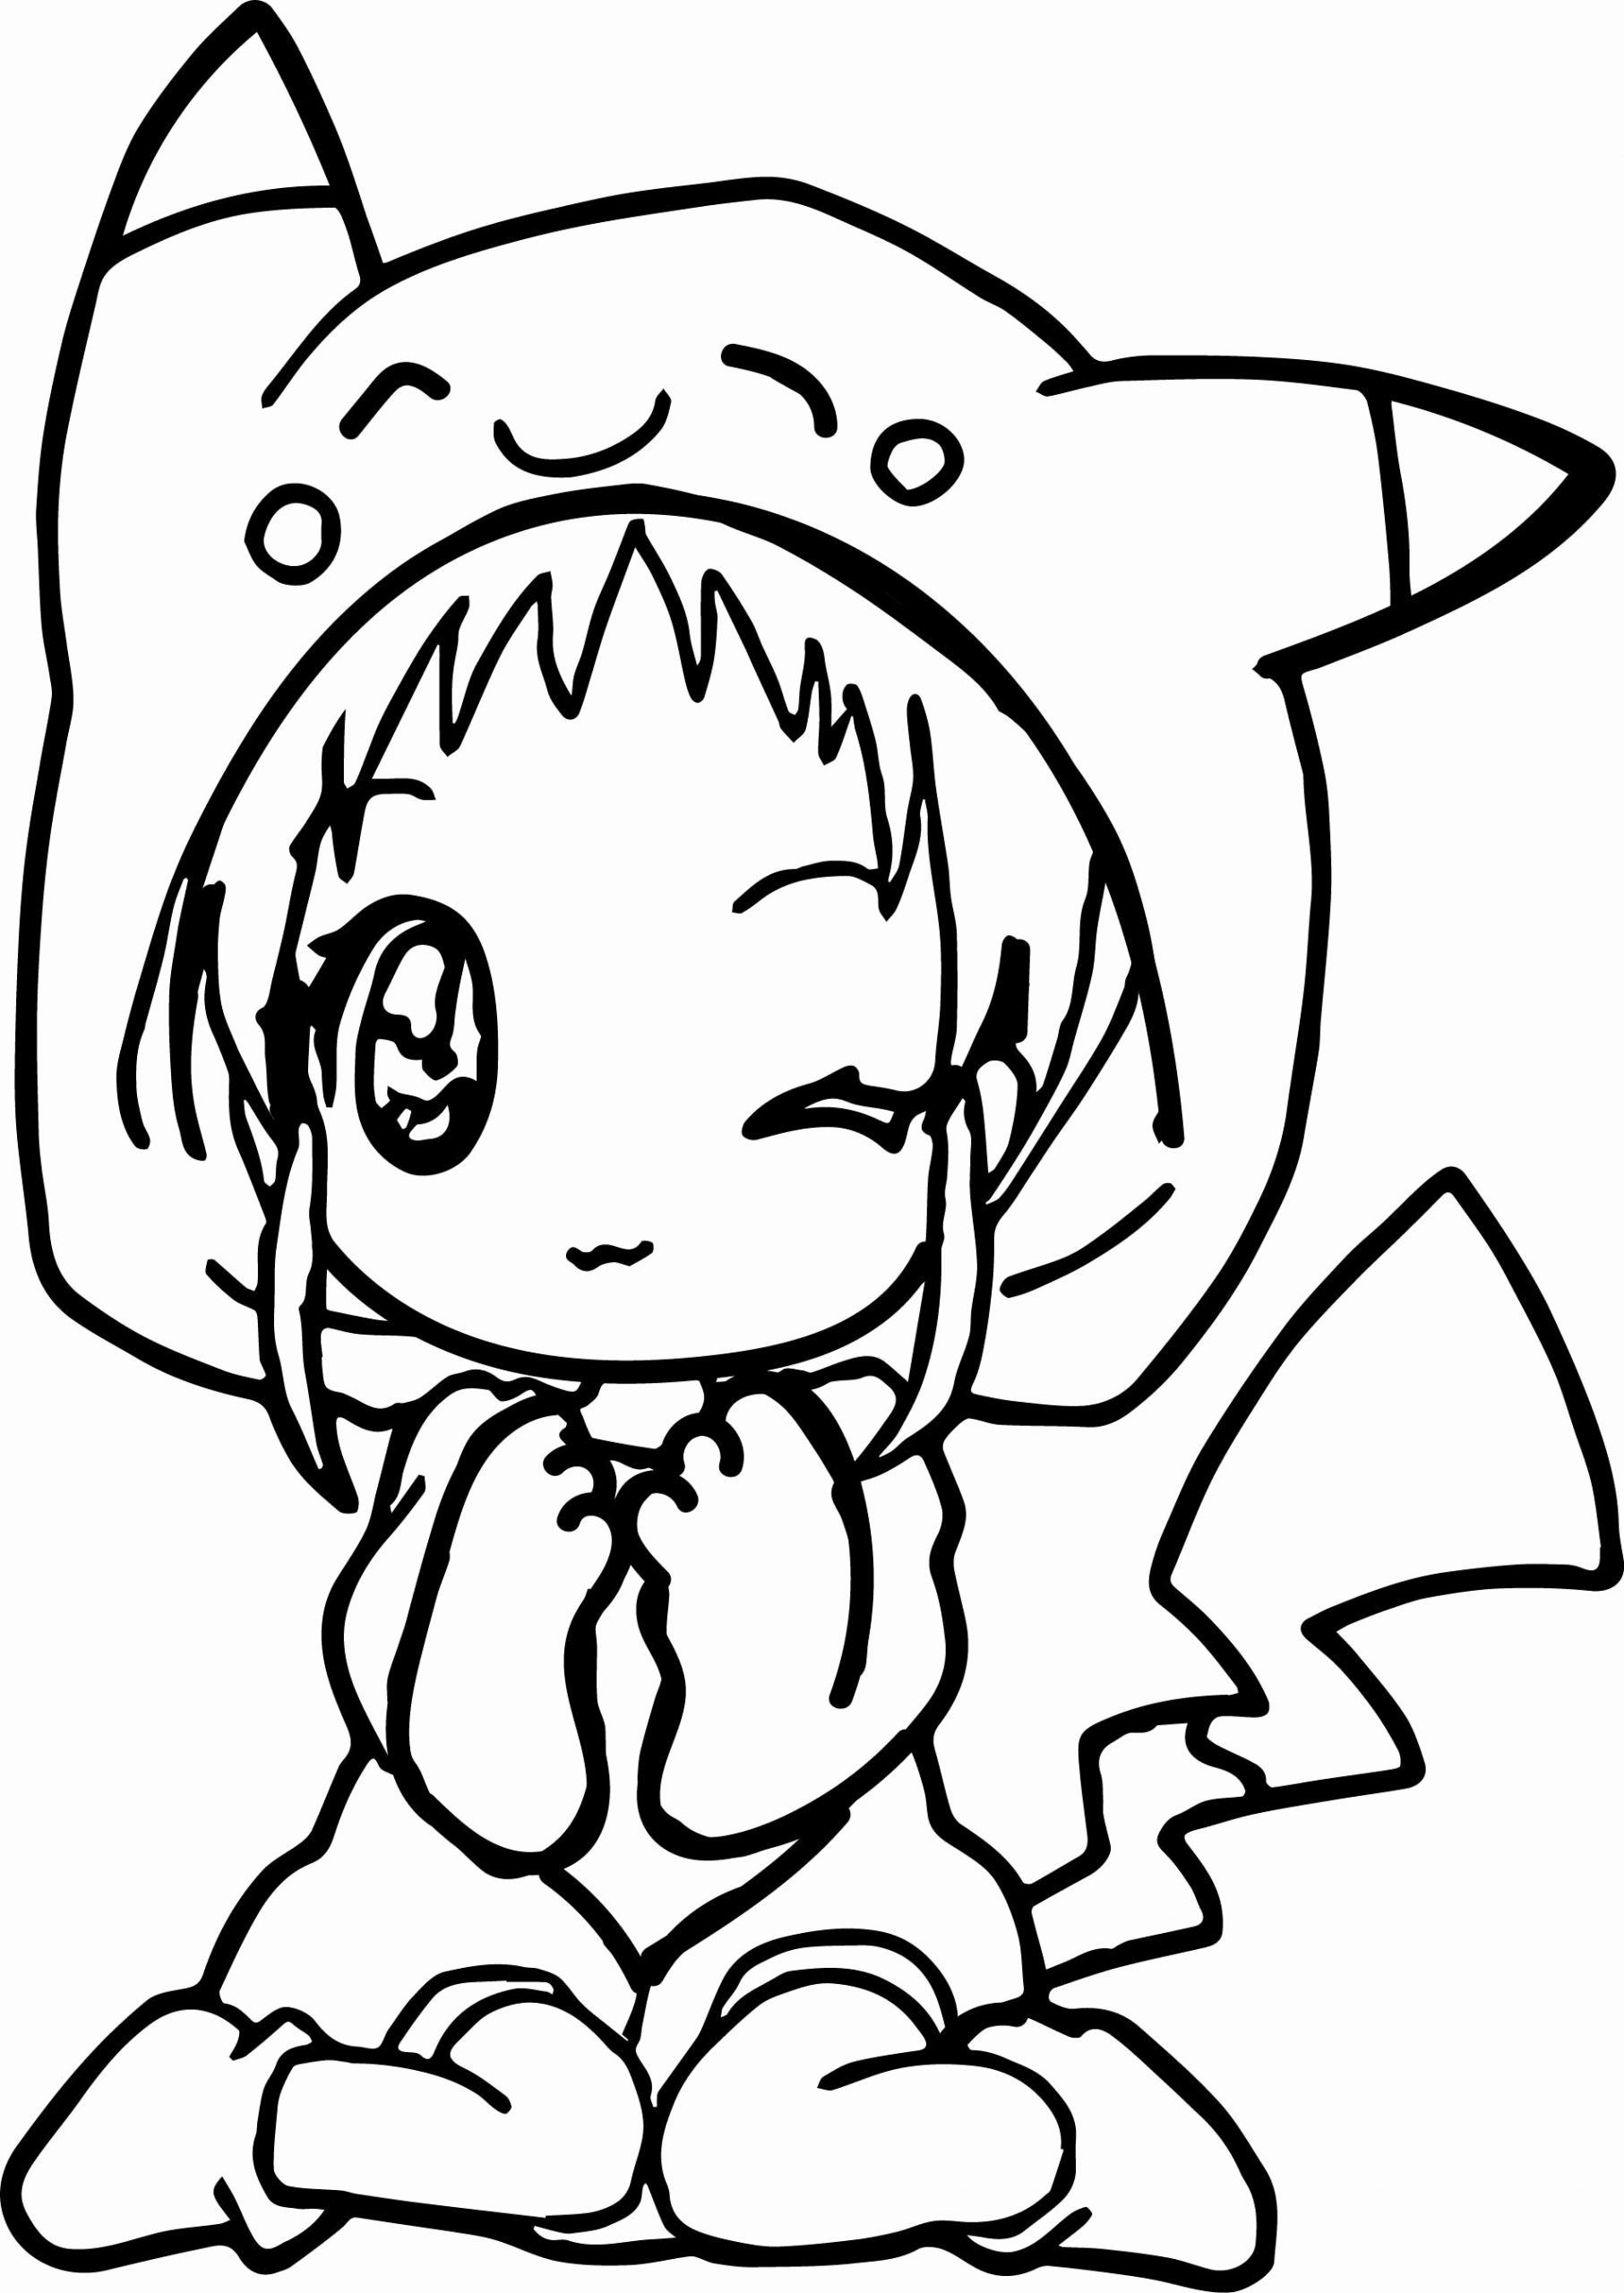 Pin On Anime Coloring Pages Ideas Printable